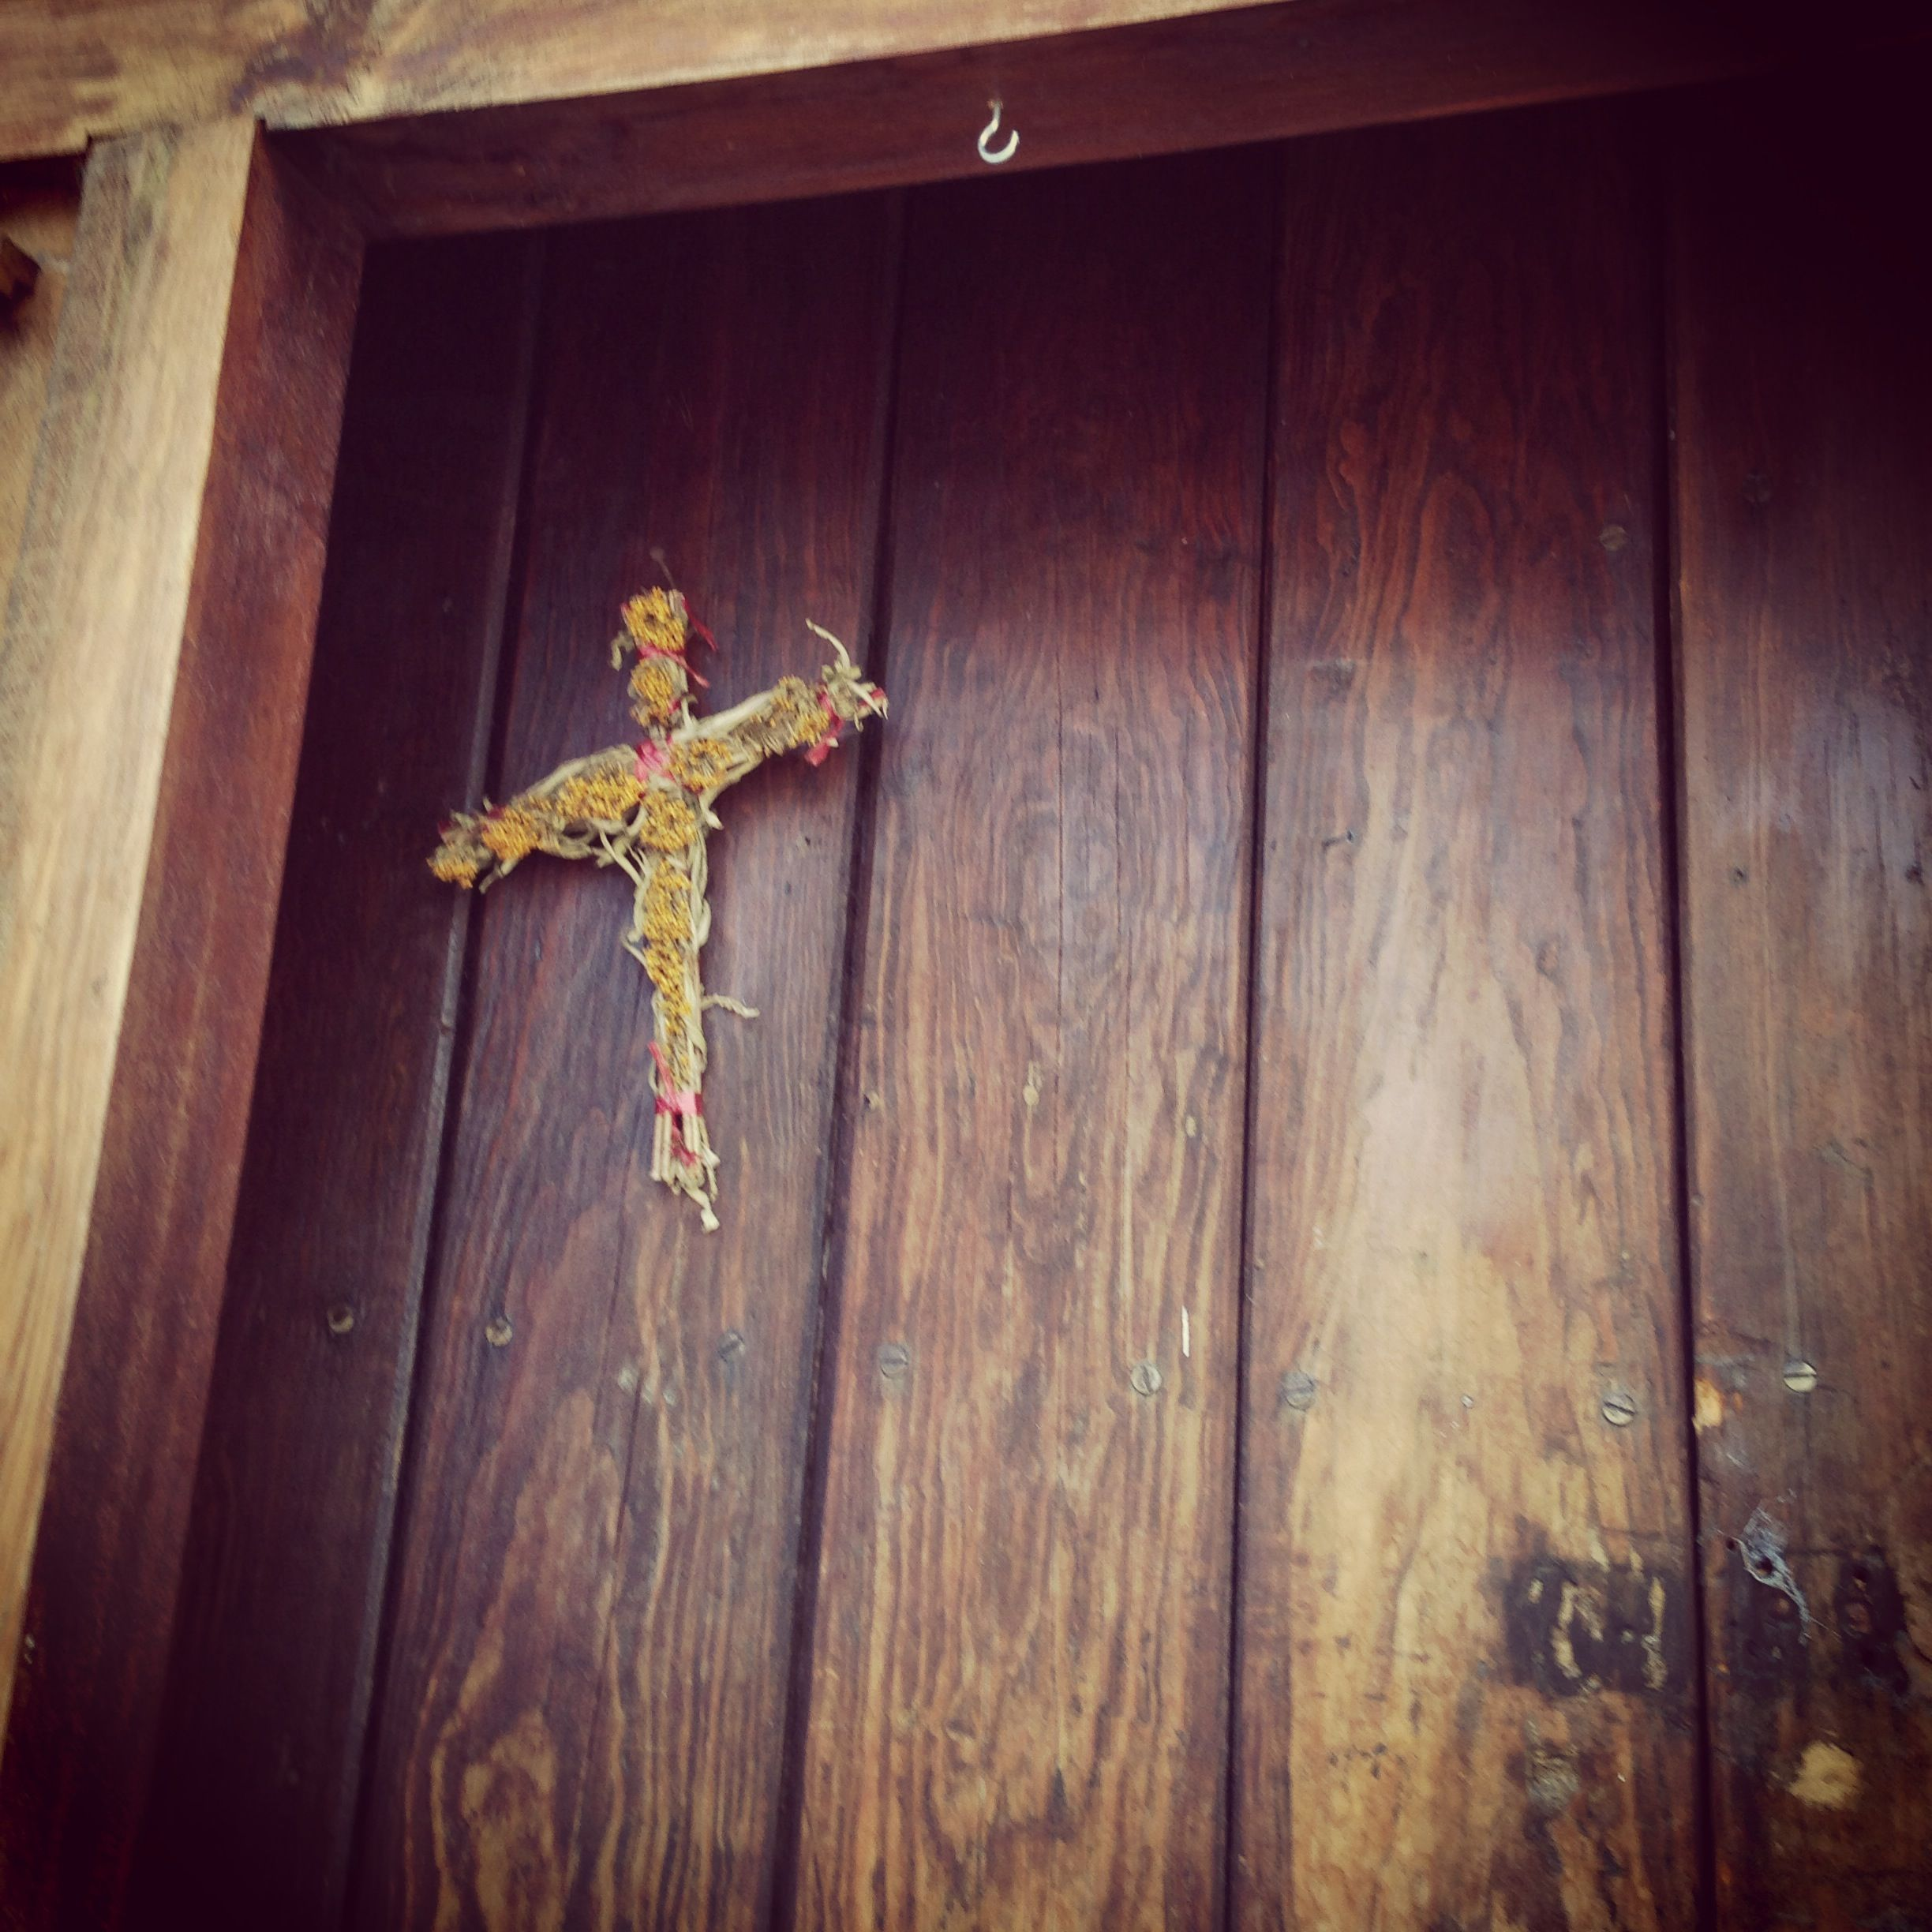 #Cross #Door #Mexico